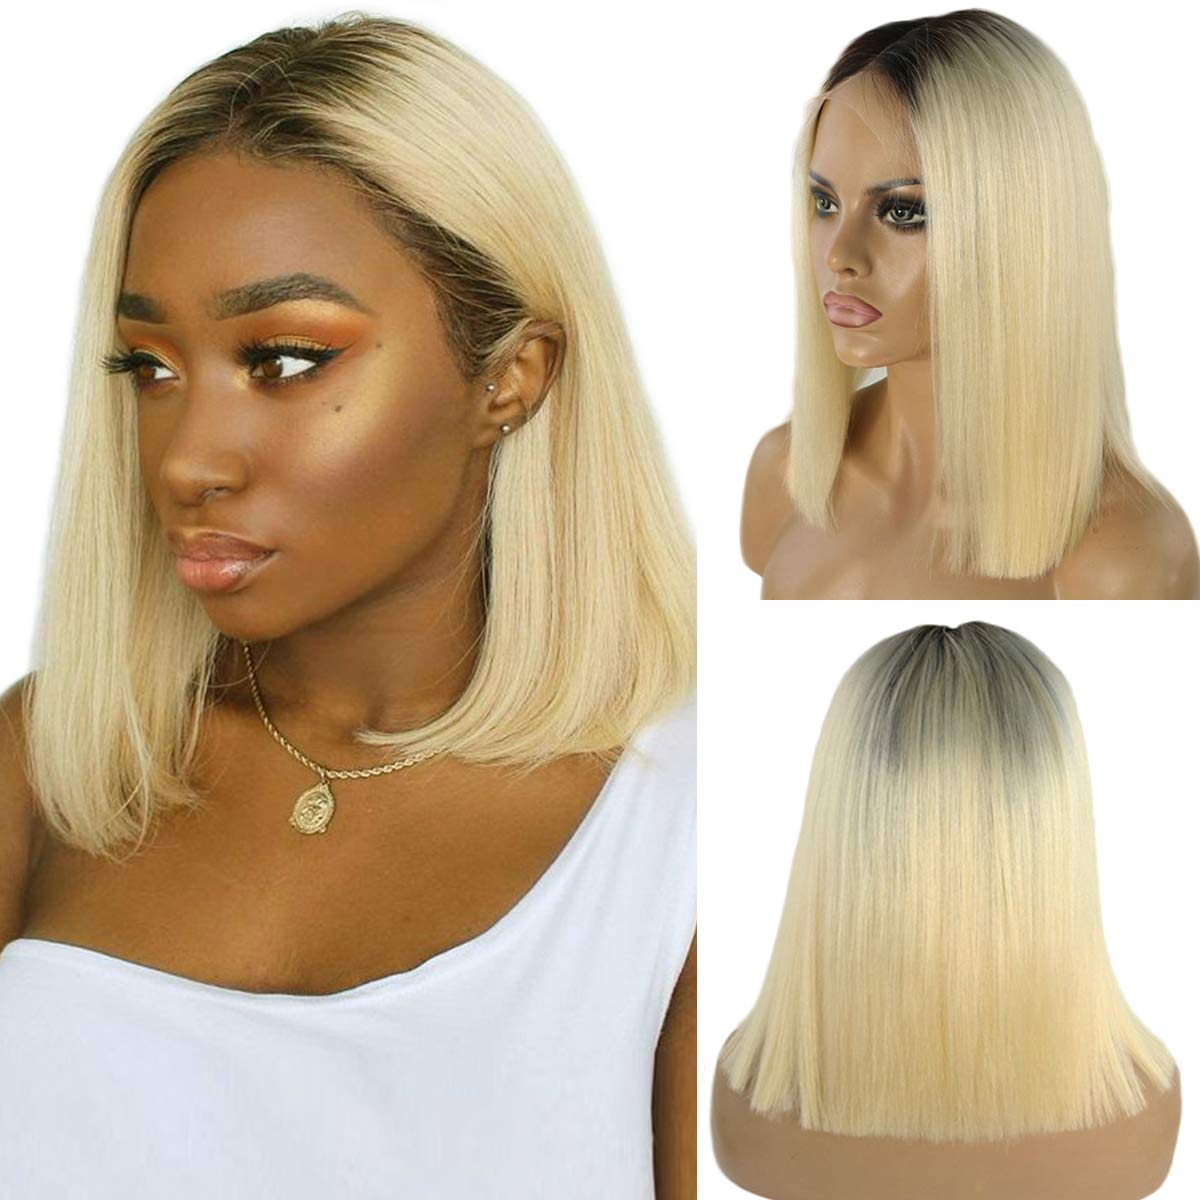 Ombre Blonde Human Hair Bob Lace Front Wigs Brazilian Glueless Lace Frontal Wig 2 Tone 1B/613 Straight Remy Hair for Black Women Pre Plucked Bleached Knots Lace Wig 12''